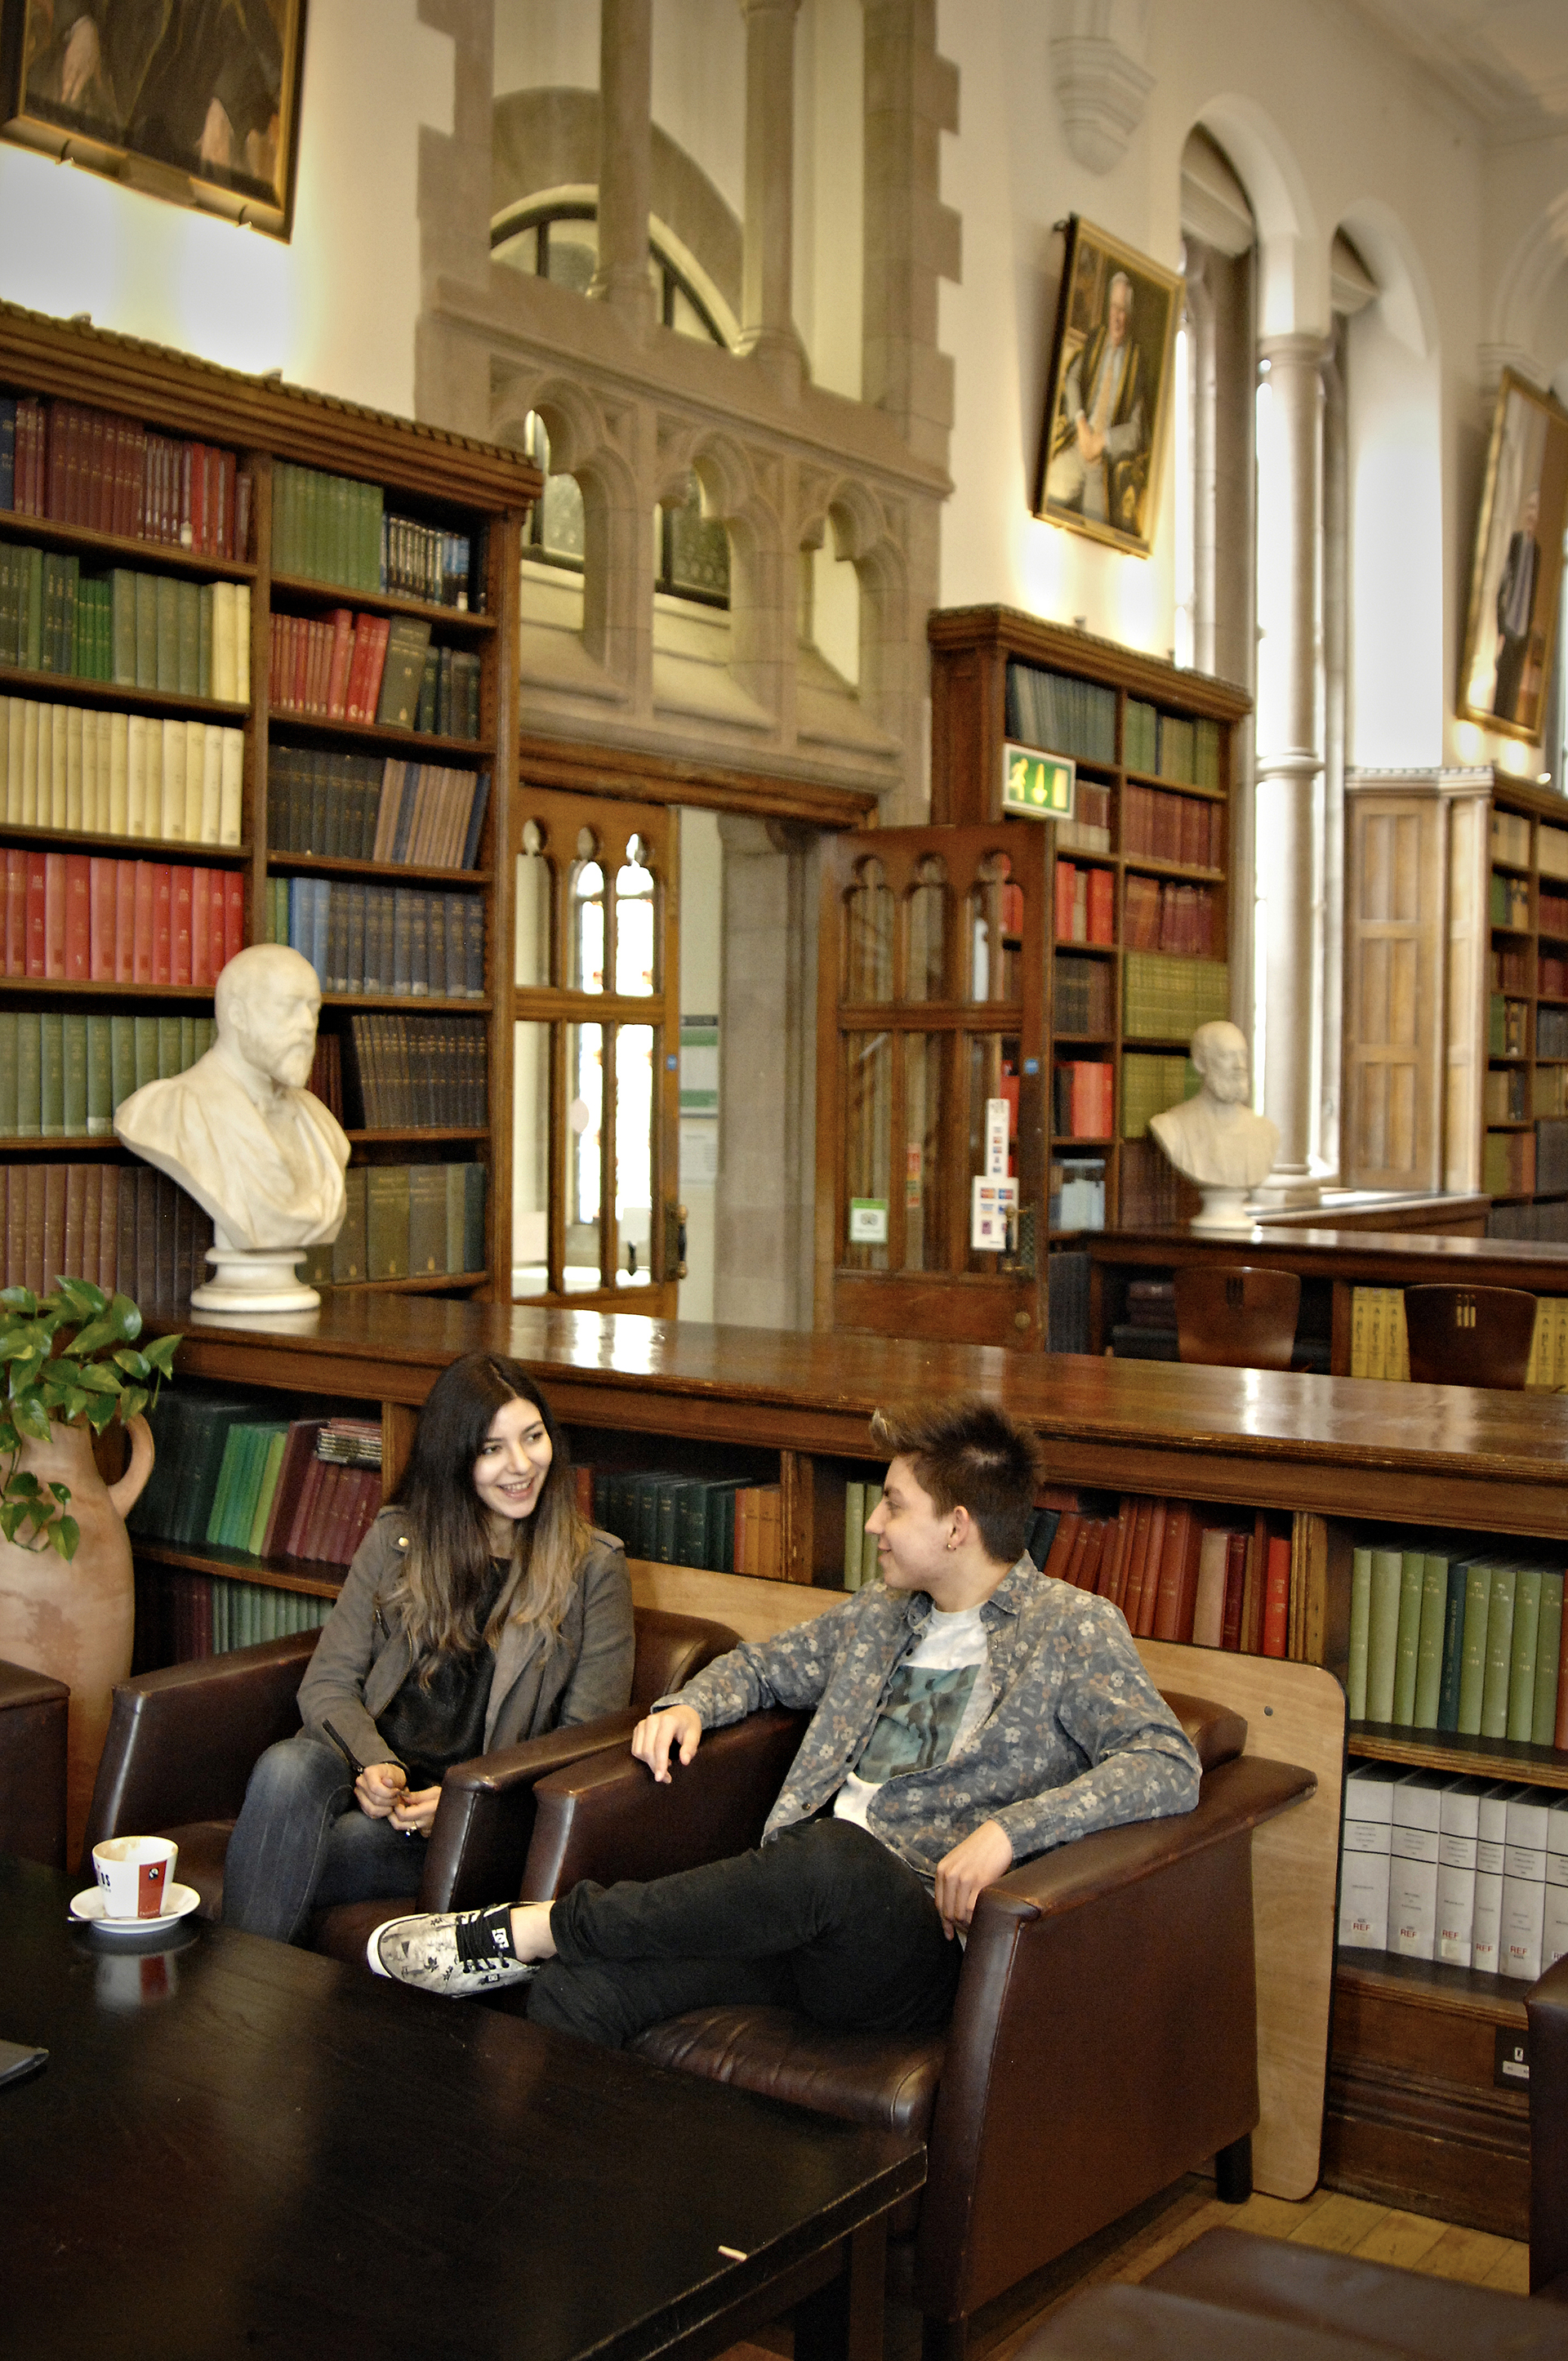 Students in The University of Manchester library